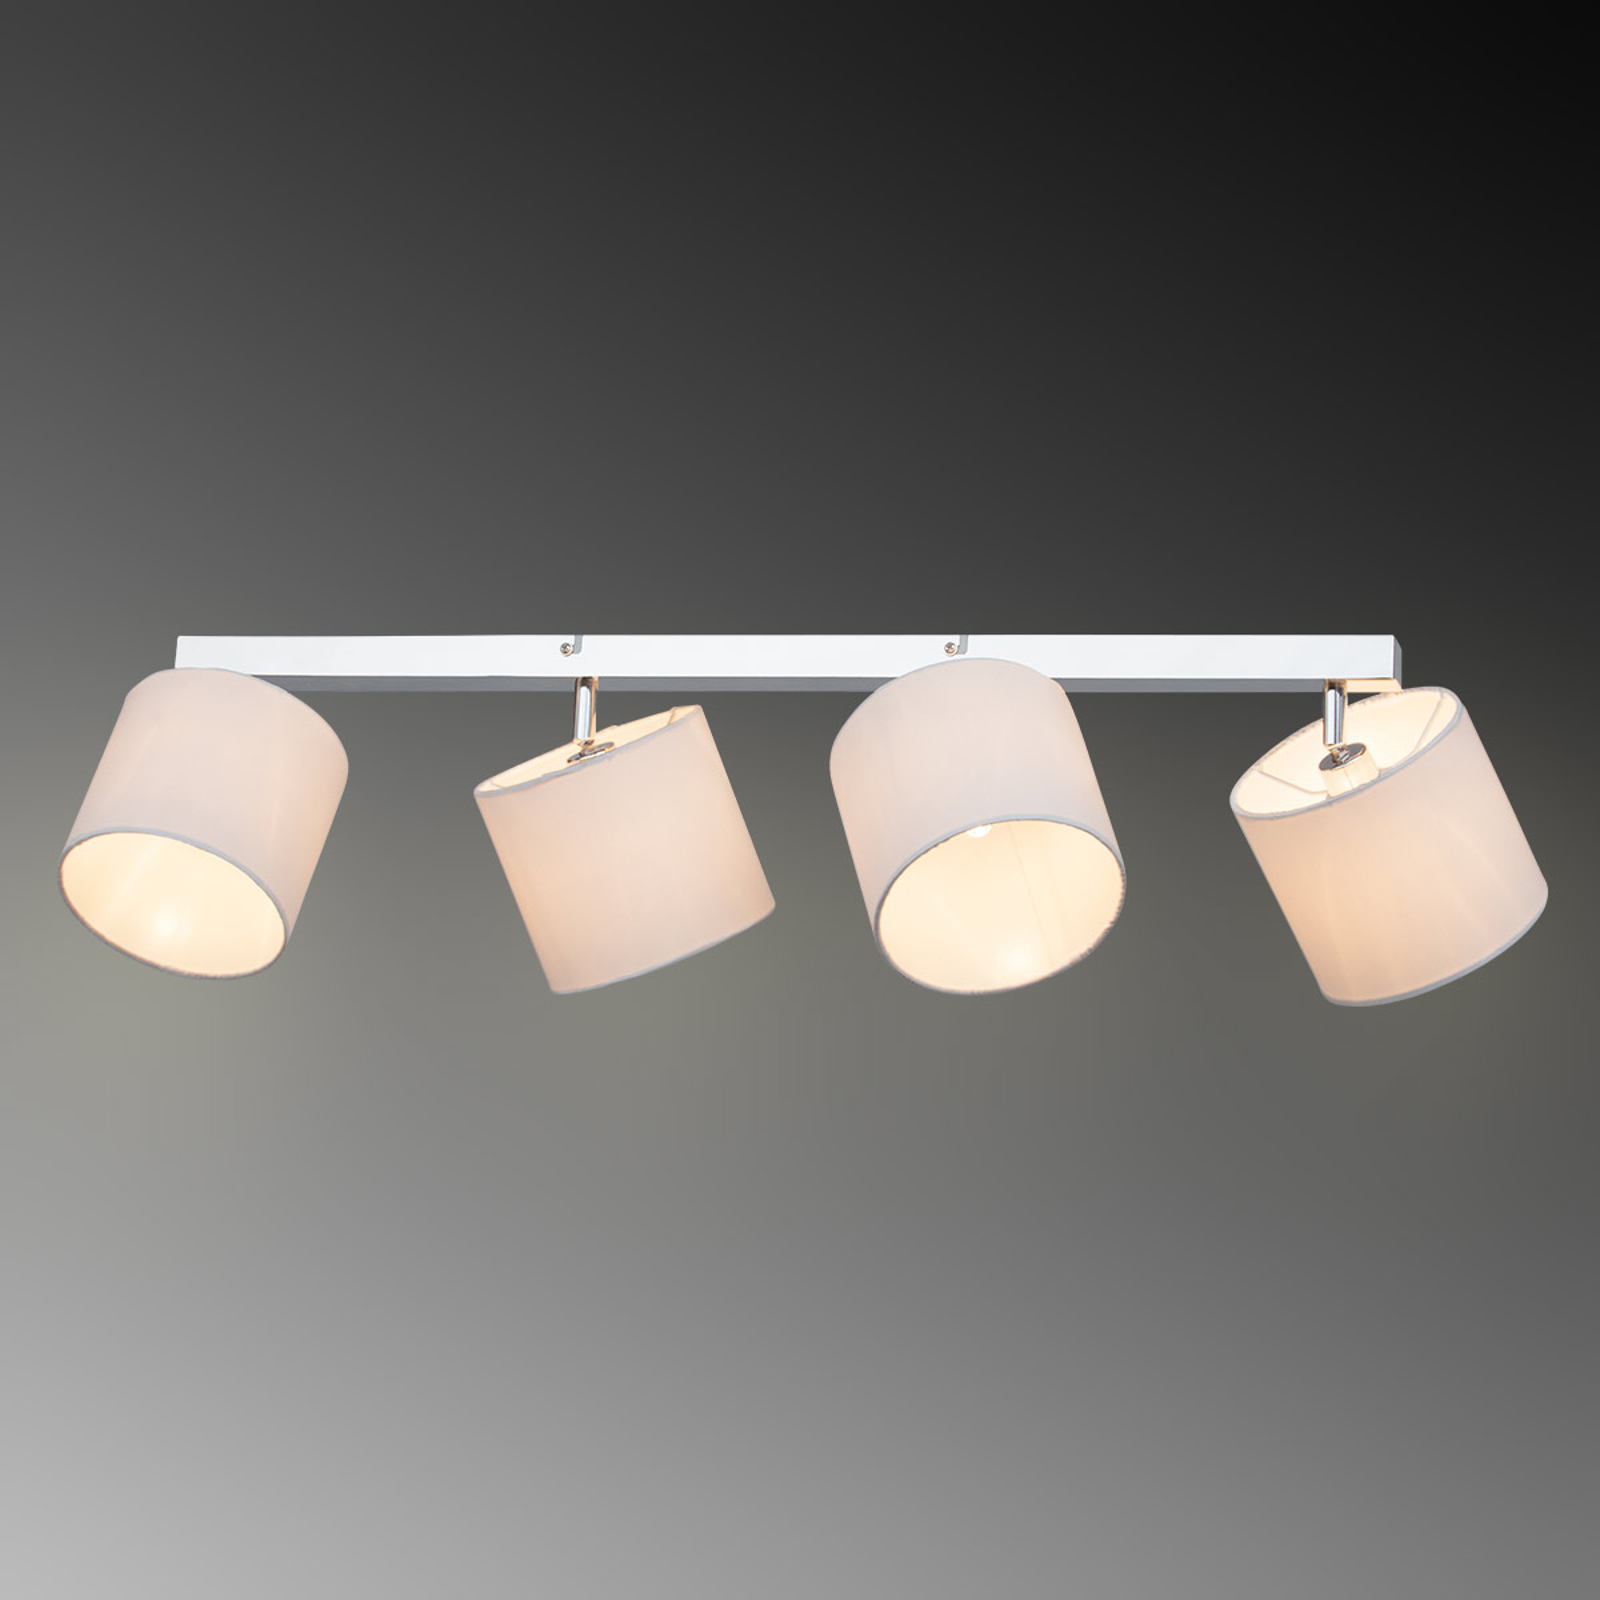 Sandra ceiling light with fabric lampshades 4-bulb_1508886_1